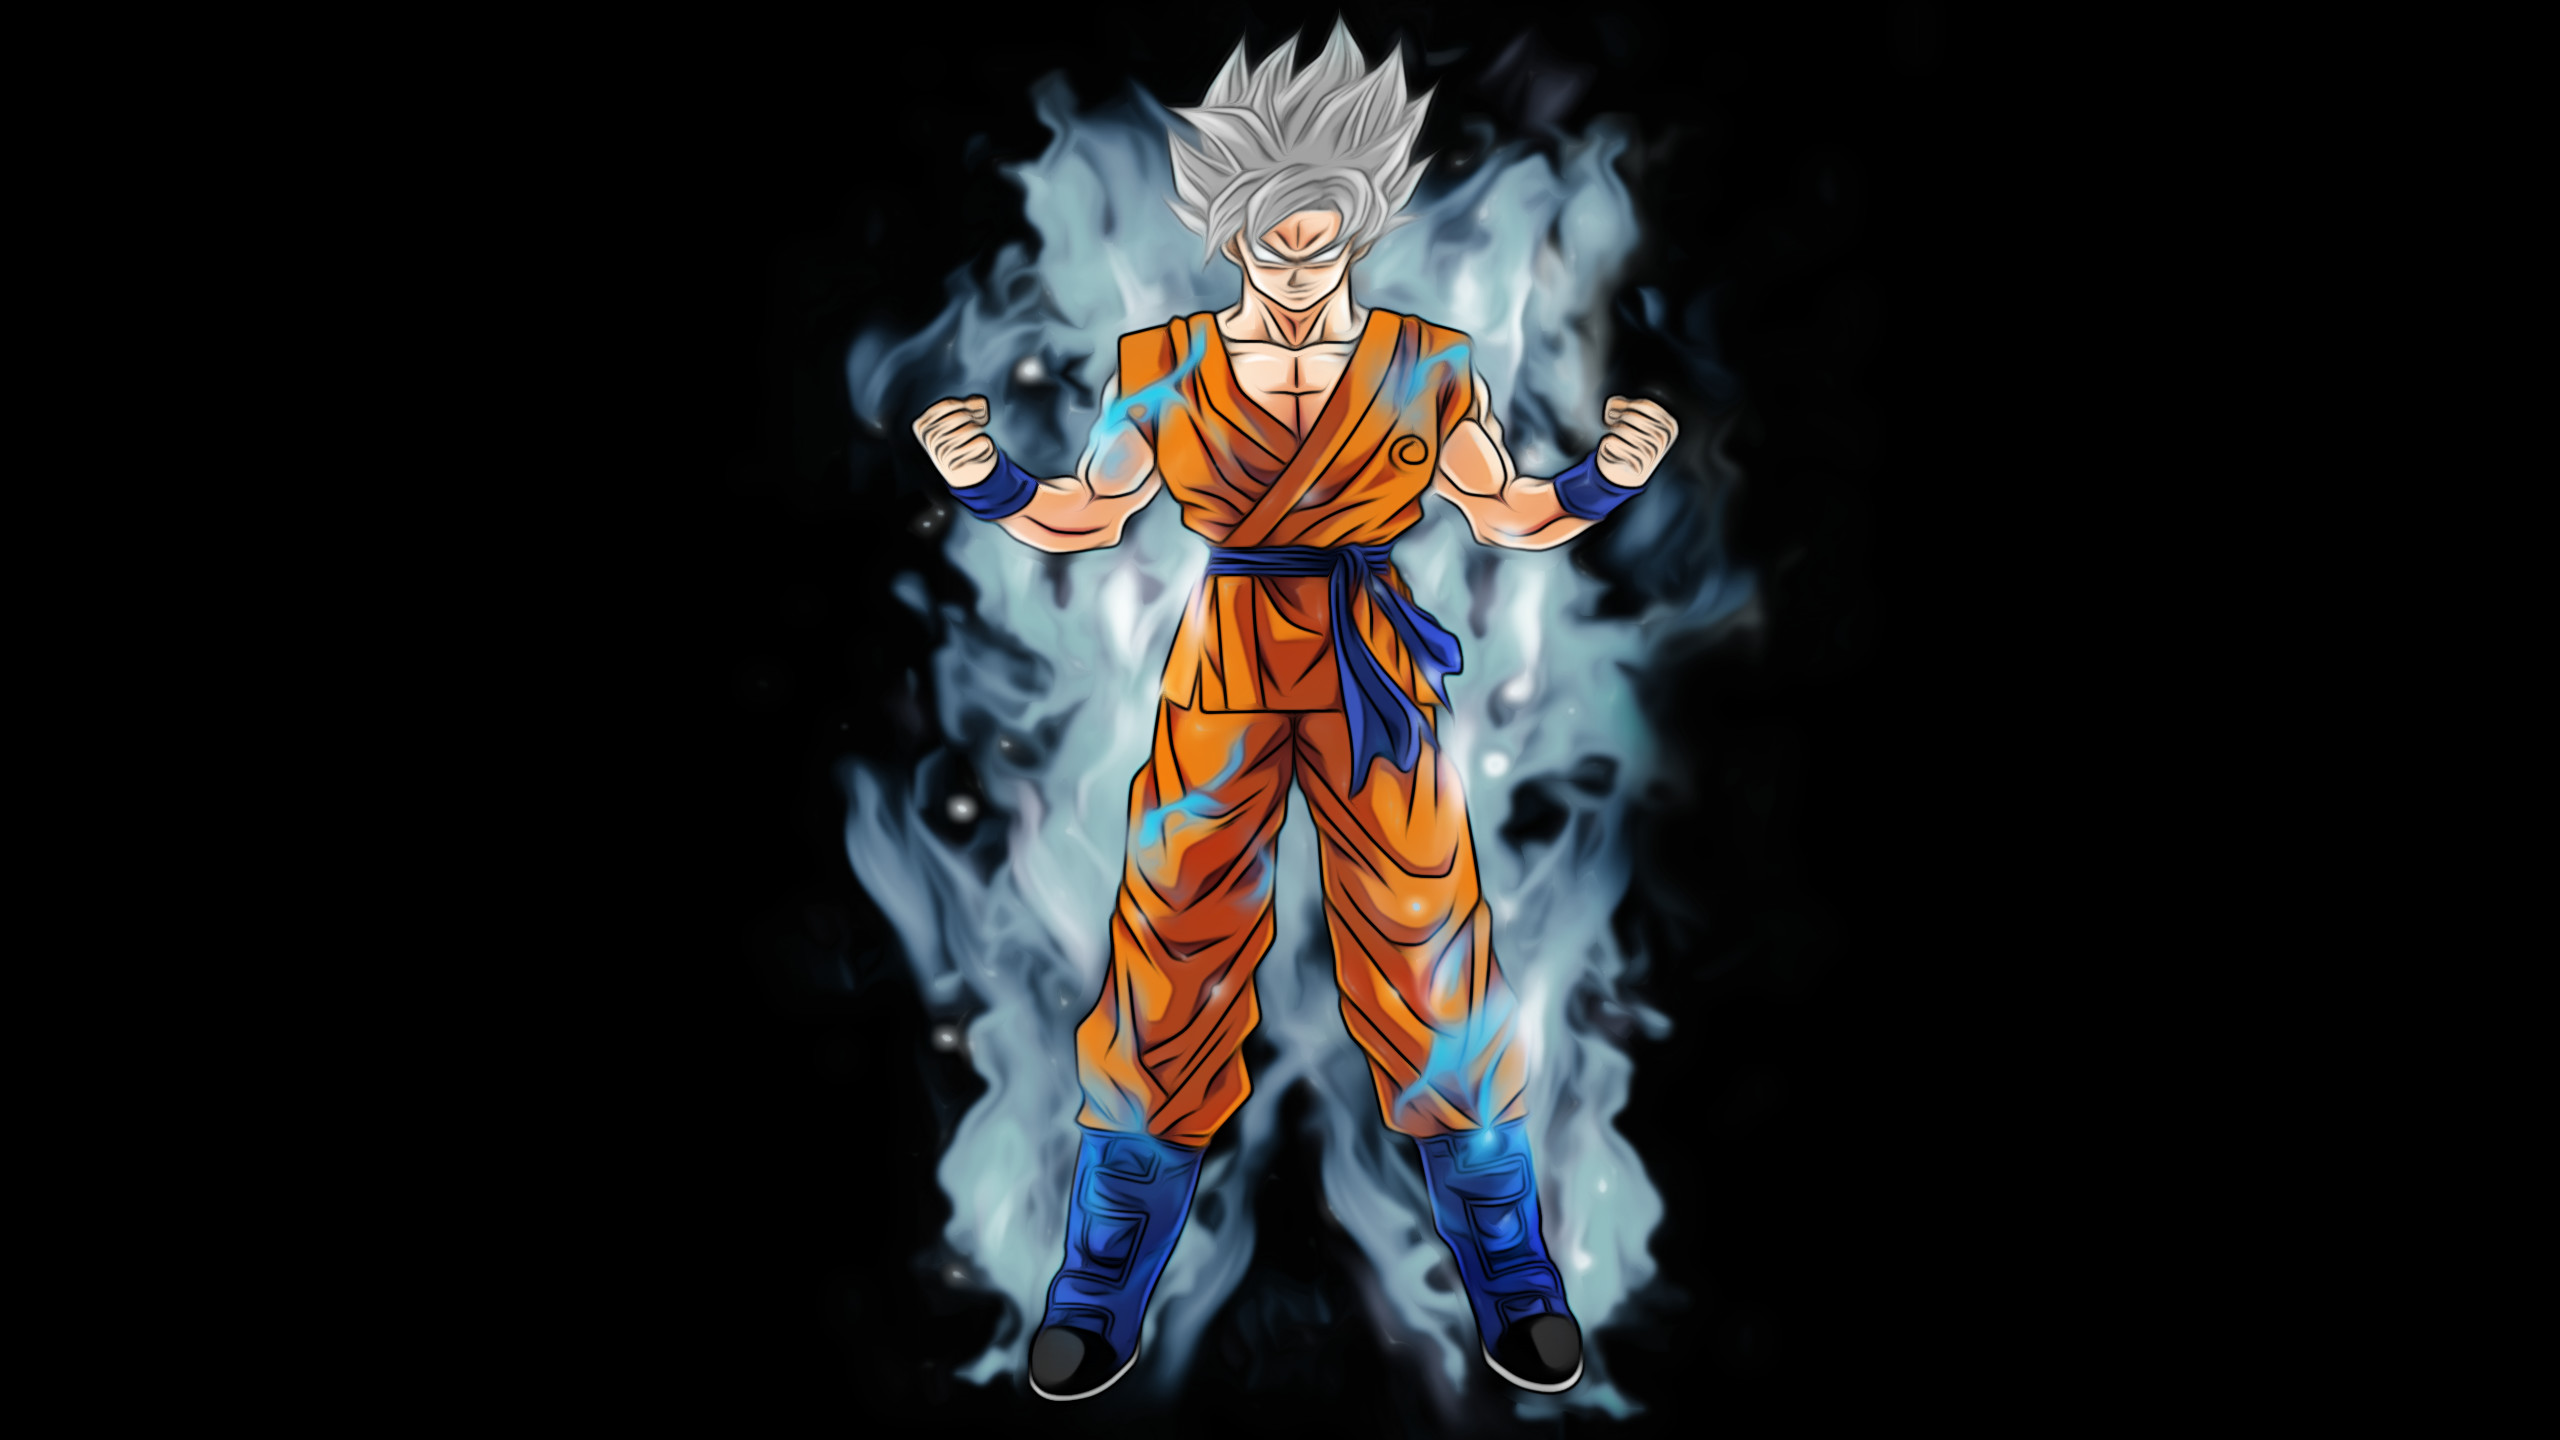 Super saiyans wallpaper wallpapertag - Dragon ball super background music mp3 download ...